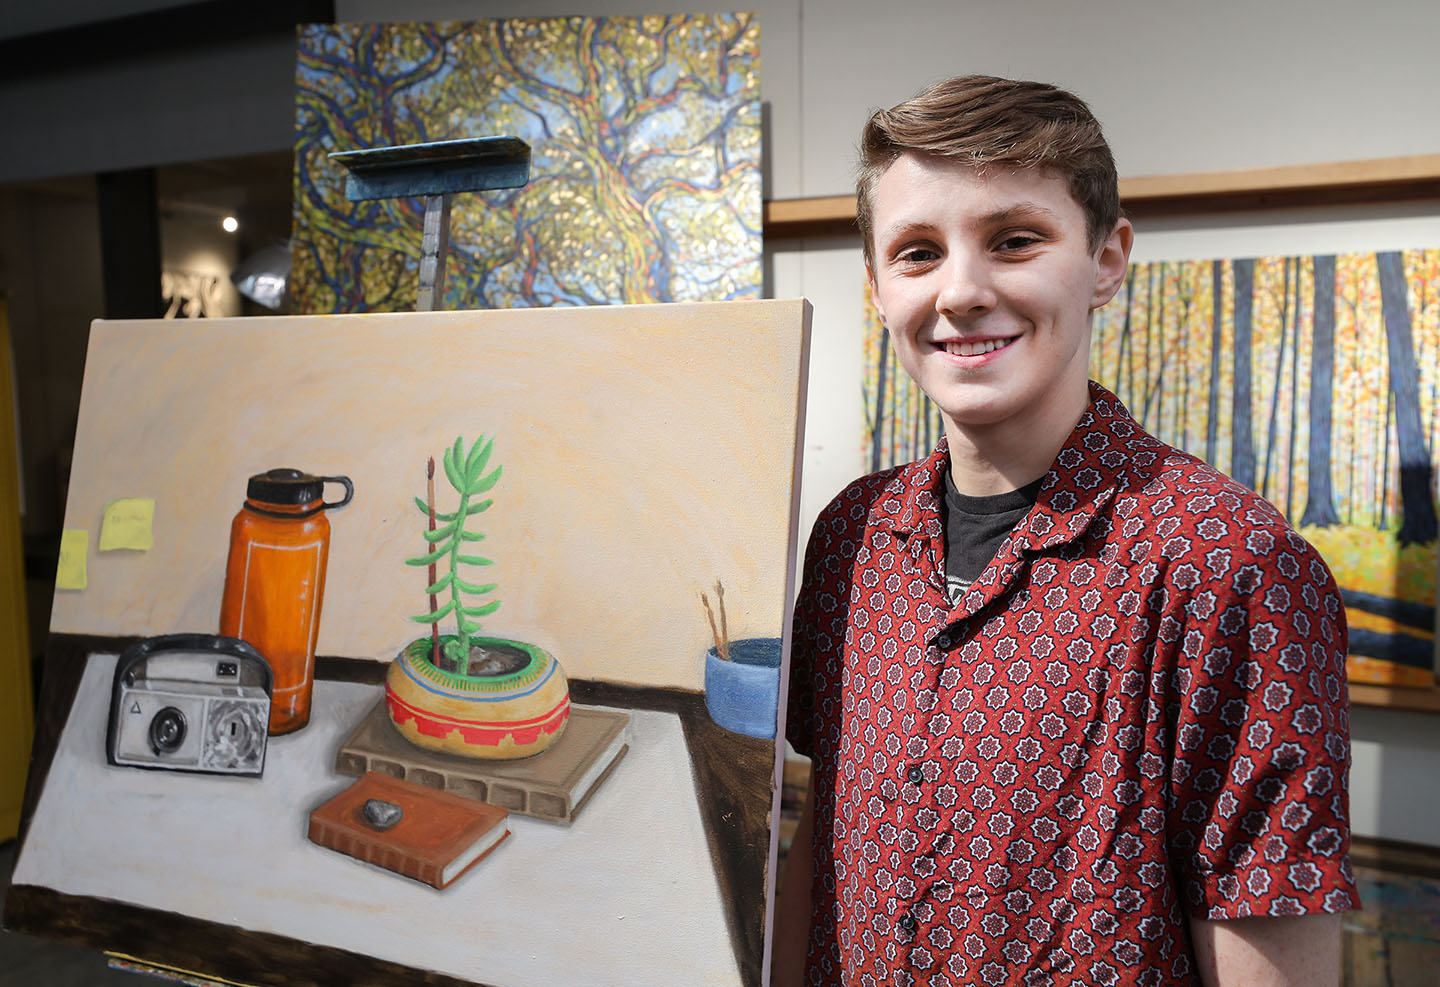 Ryan Sikes, an art education major, received the Multicultural Community Service Scholarship from UNK's Office of Student Diversity and Inclusion. The scholarship covers tuition for up to four years.